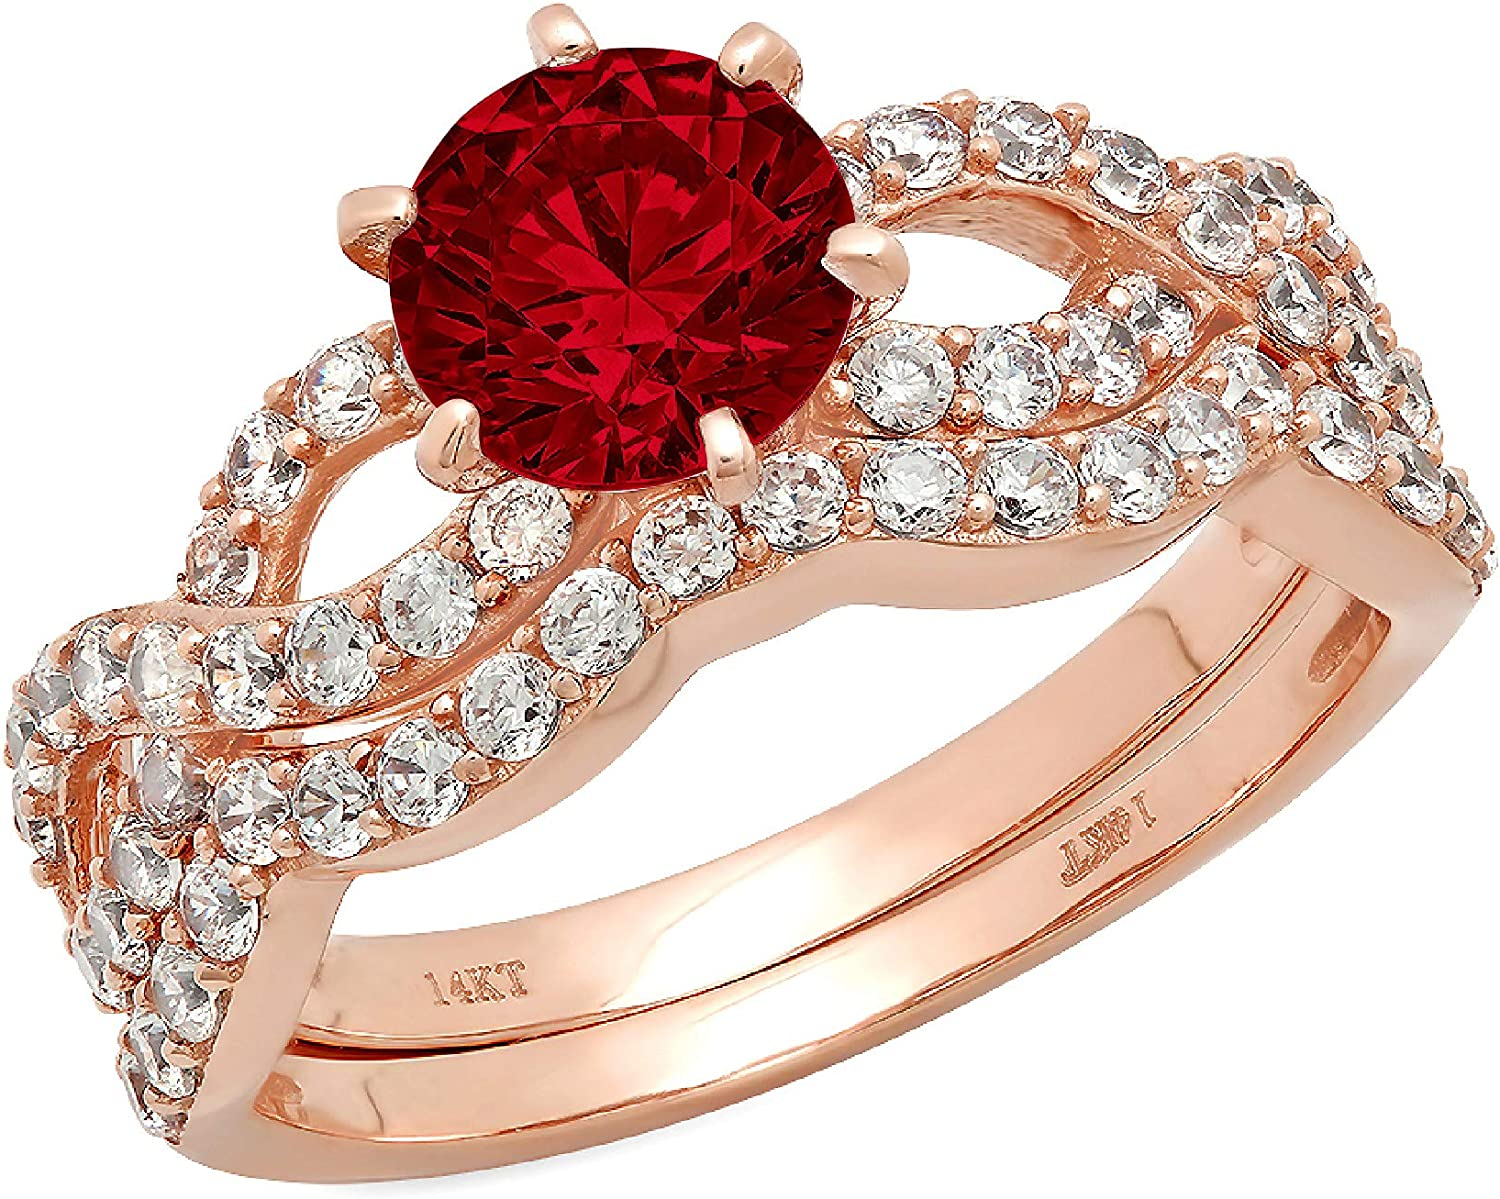 1.55ct Round Cut Halo Pave Solitaire Split Shank Accent Natural Deep Pomegranate Dark Red Garnet Engagement Promise Statement Anniversary Bridal Wedding Ring Band set Curved Real 14k Rose Pink Gold